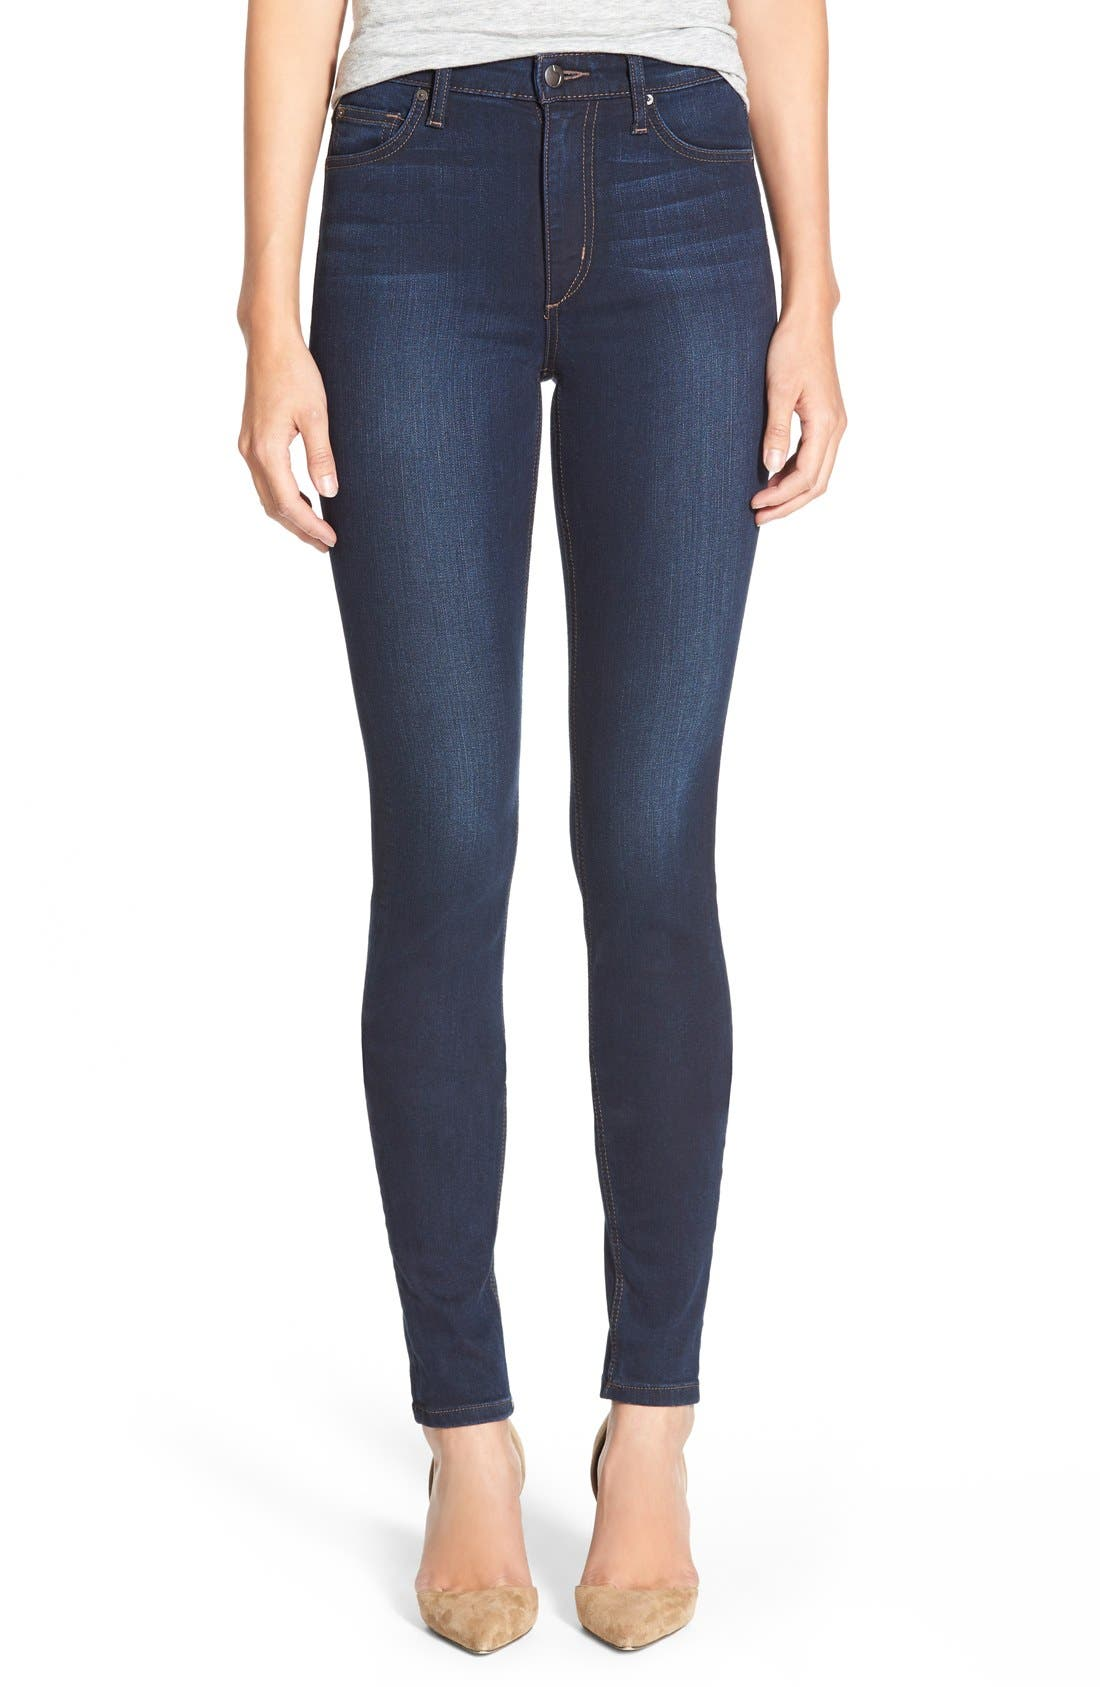 Main Image - Joe's 'Flawless - Charlie' High Rise Skinny Jeans (Cecily)